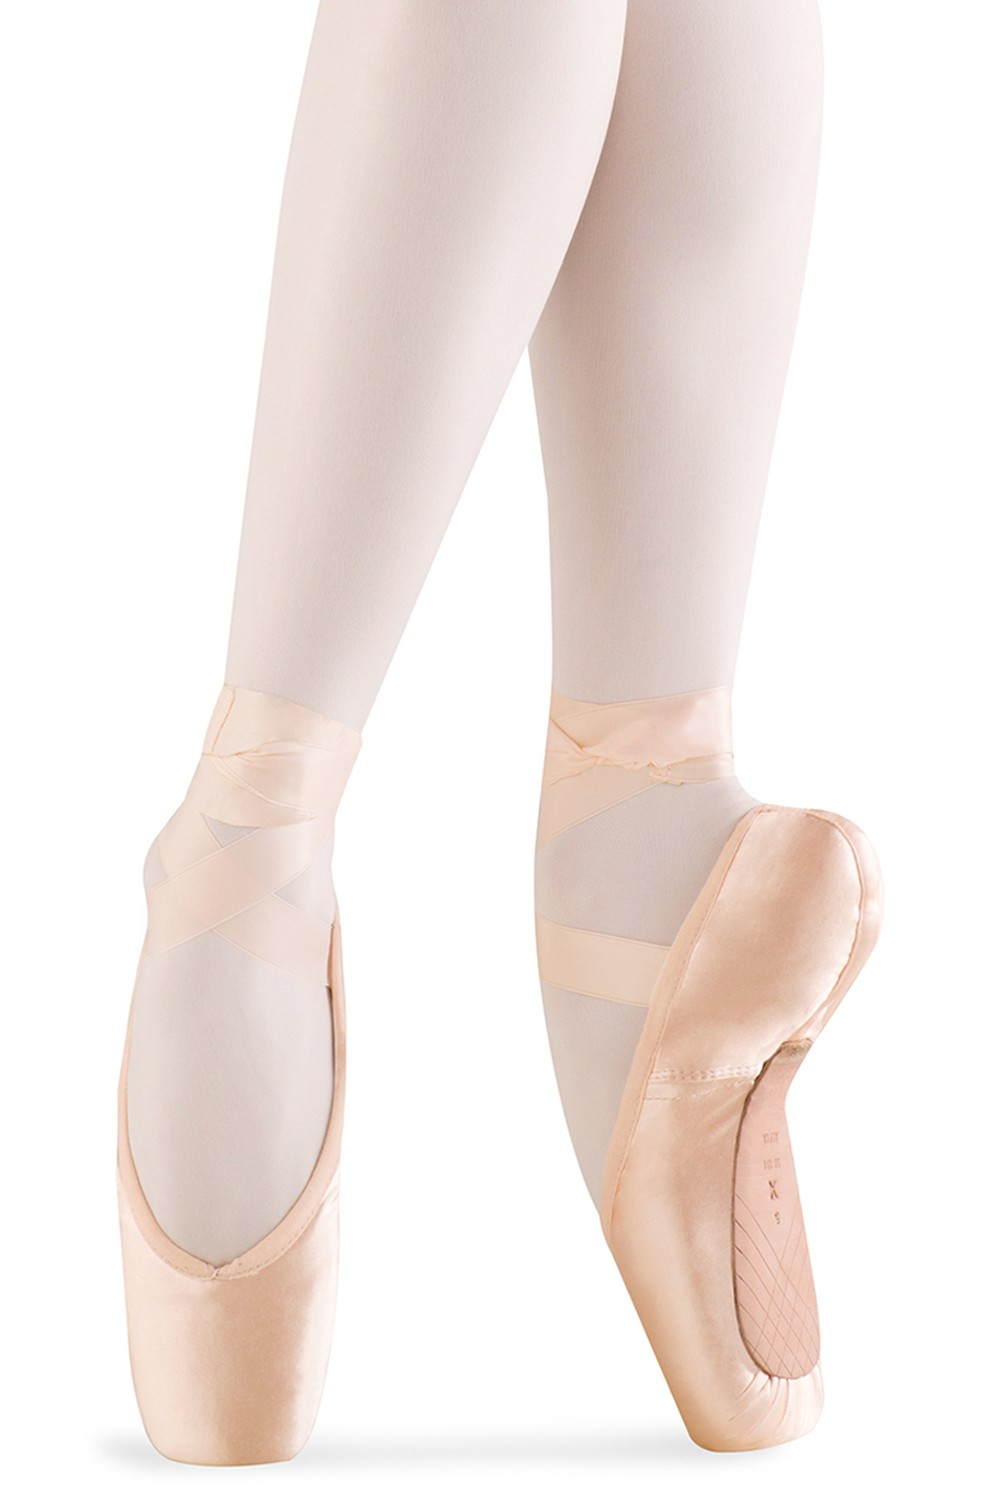 Bloch Shoes Uk